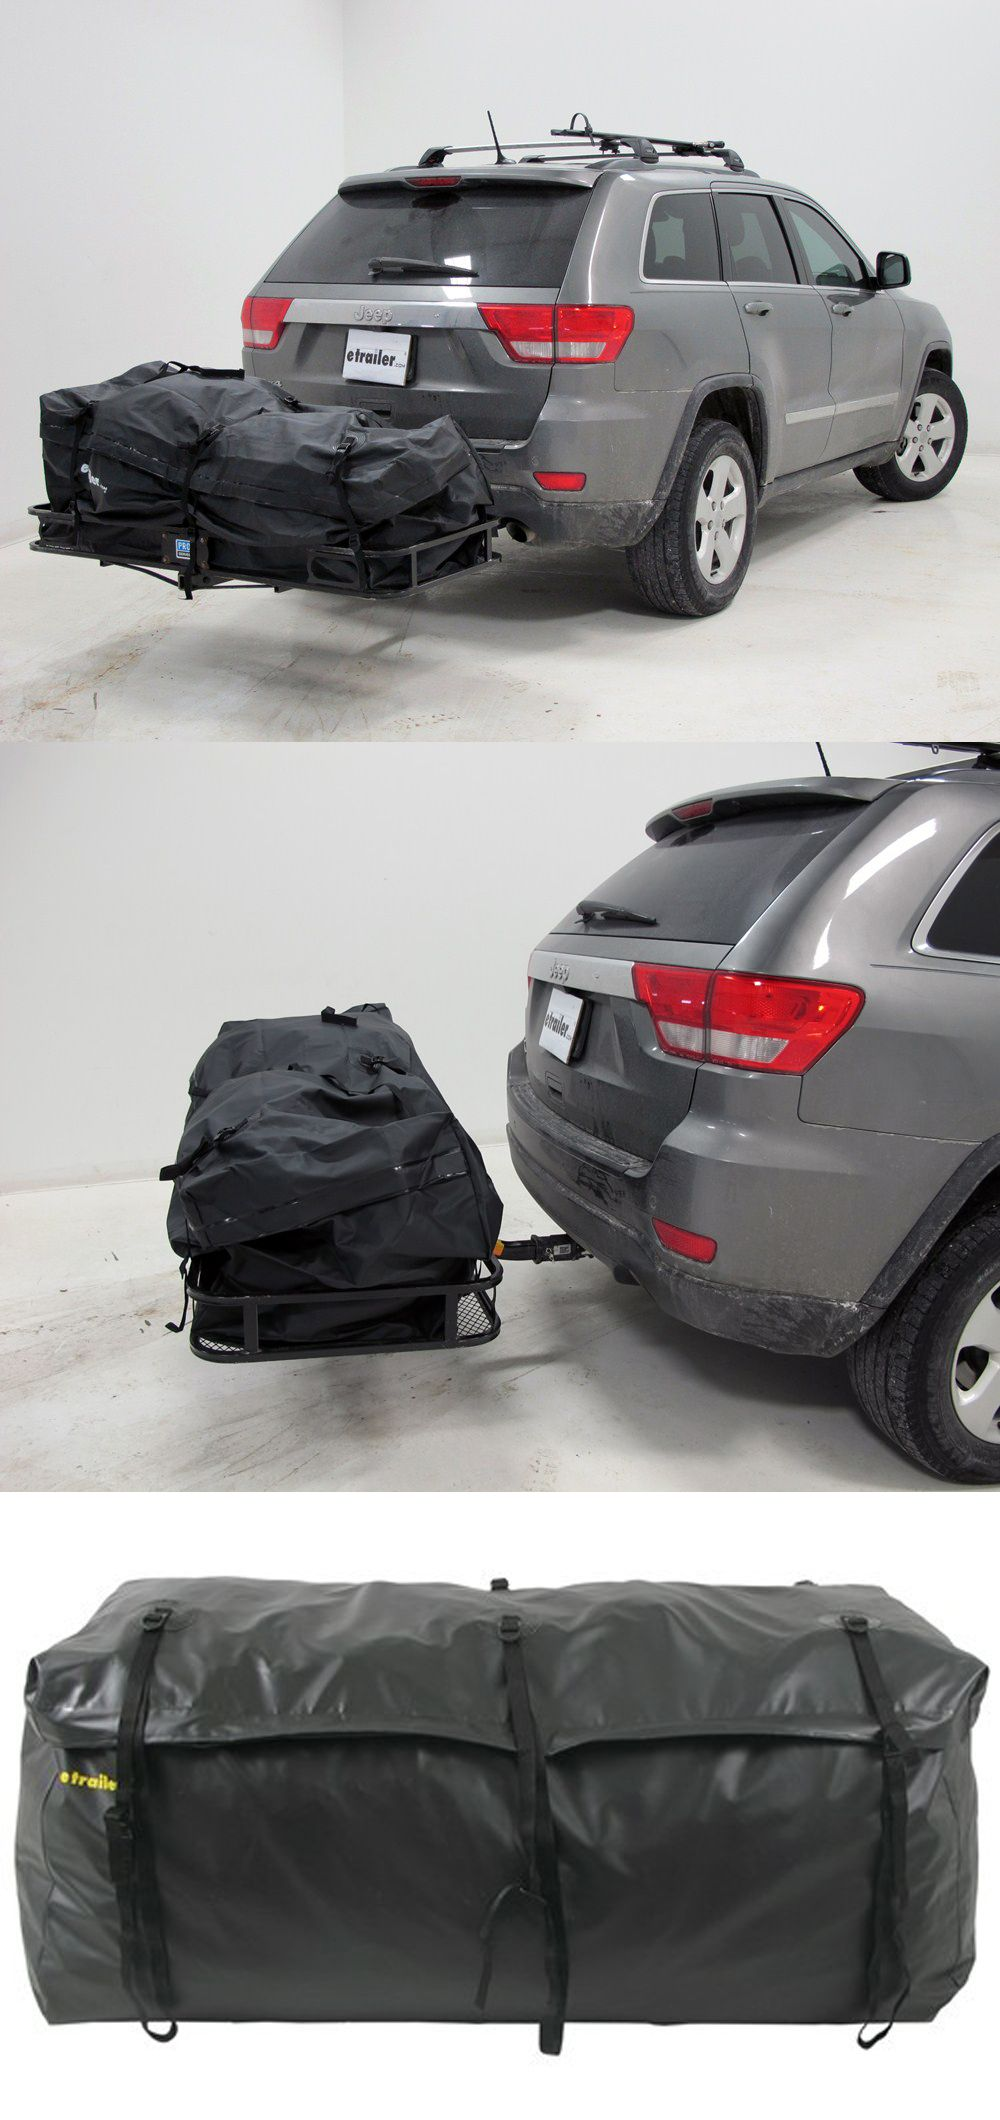 Cargo Bag W Mounting Straps Water Resistant 20 Cu Ft 59 X 24 X 24 Etrailer Hitch Hitch Mounted Cargo Carrier Cargo Carriers Hitch Cargo Carrier